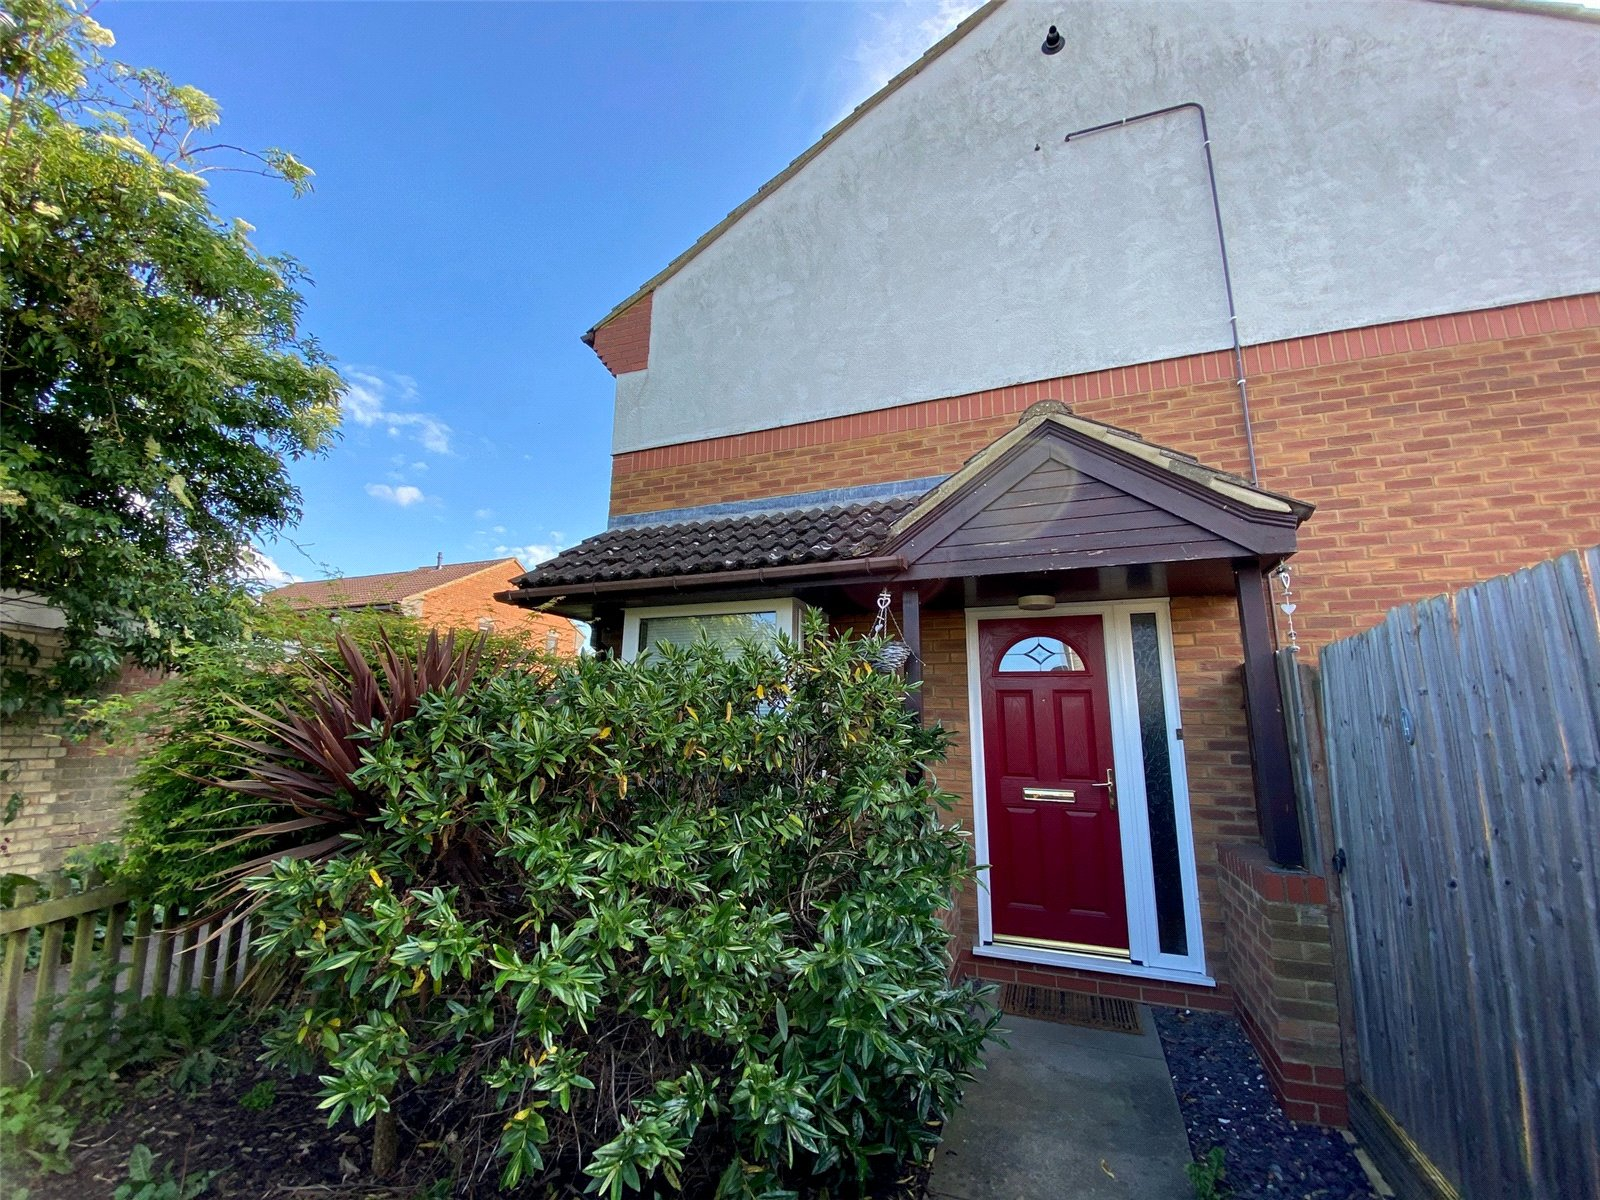 3 bed house for sale in Eayre Court, St Neots, PE19